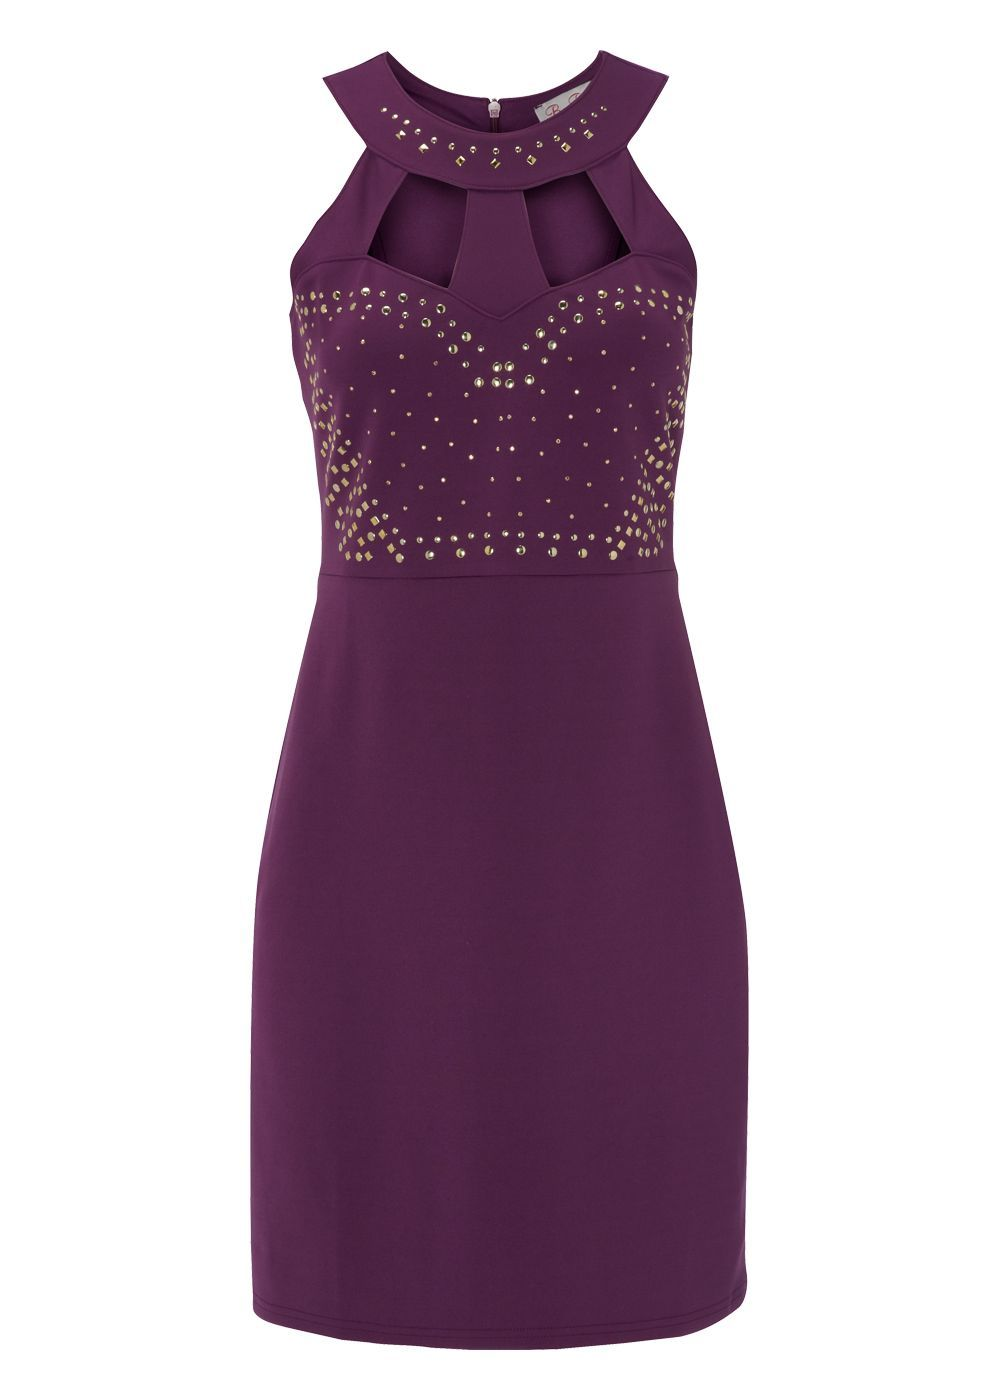 Inspire Me   Pinterest   Bodycon dress, Clothing and Woman